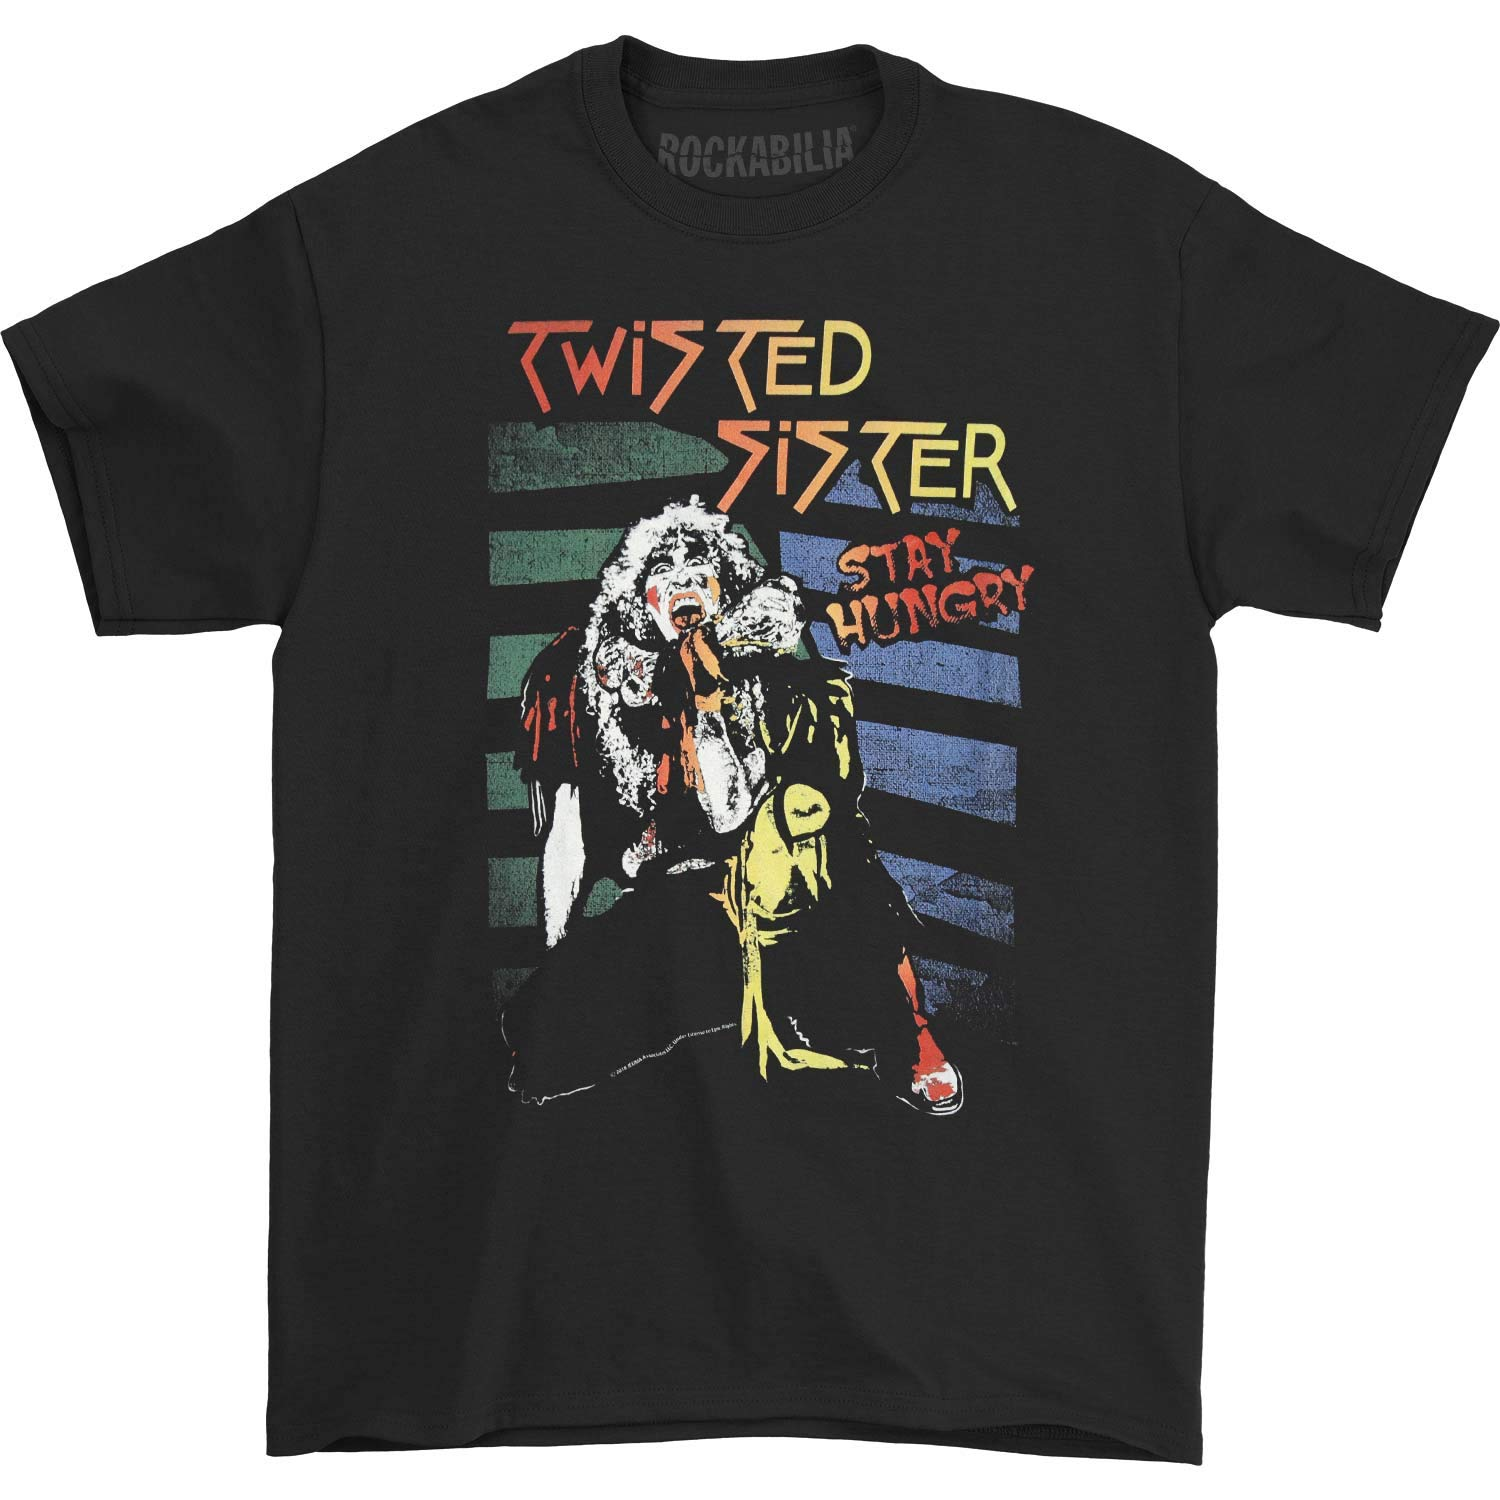 Twisted Sister American Heavy Metal Band Stay Hungry Adult T Shirt Tee